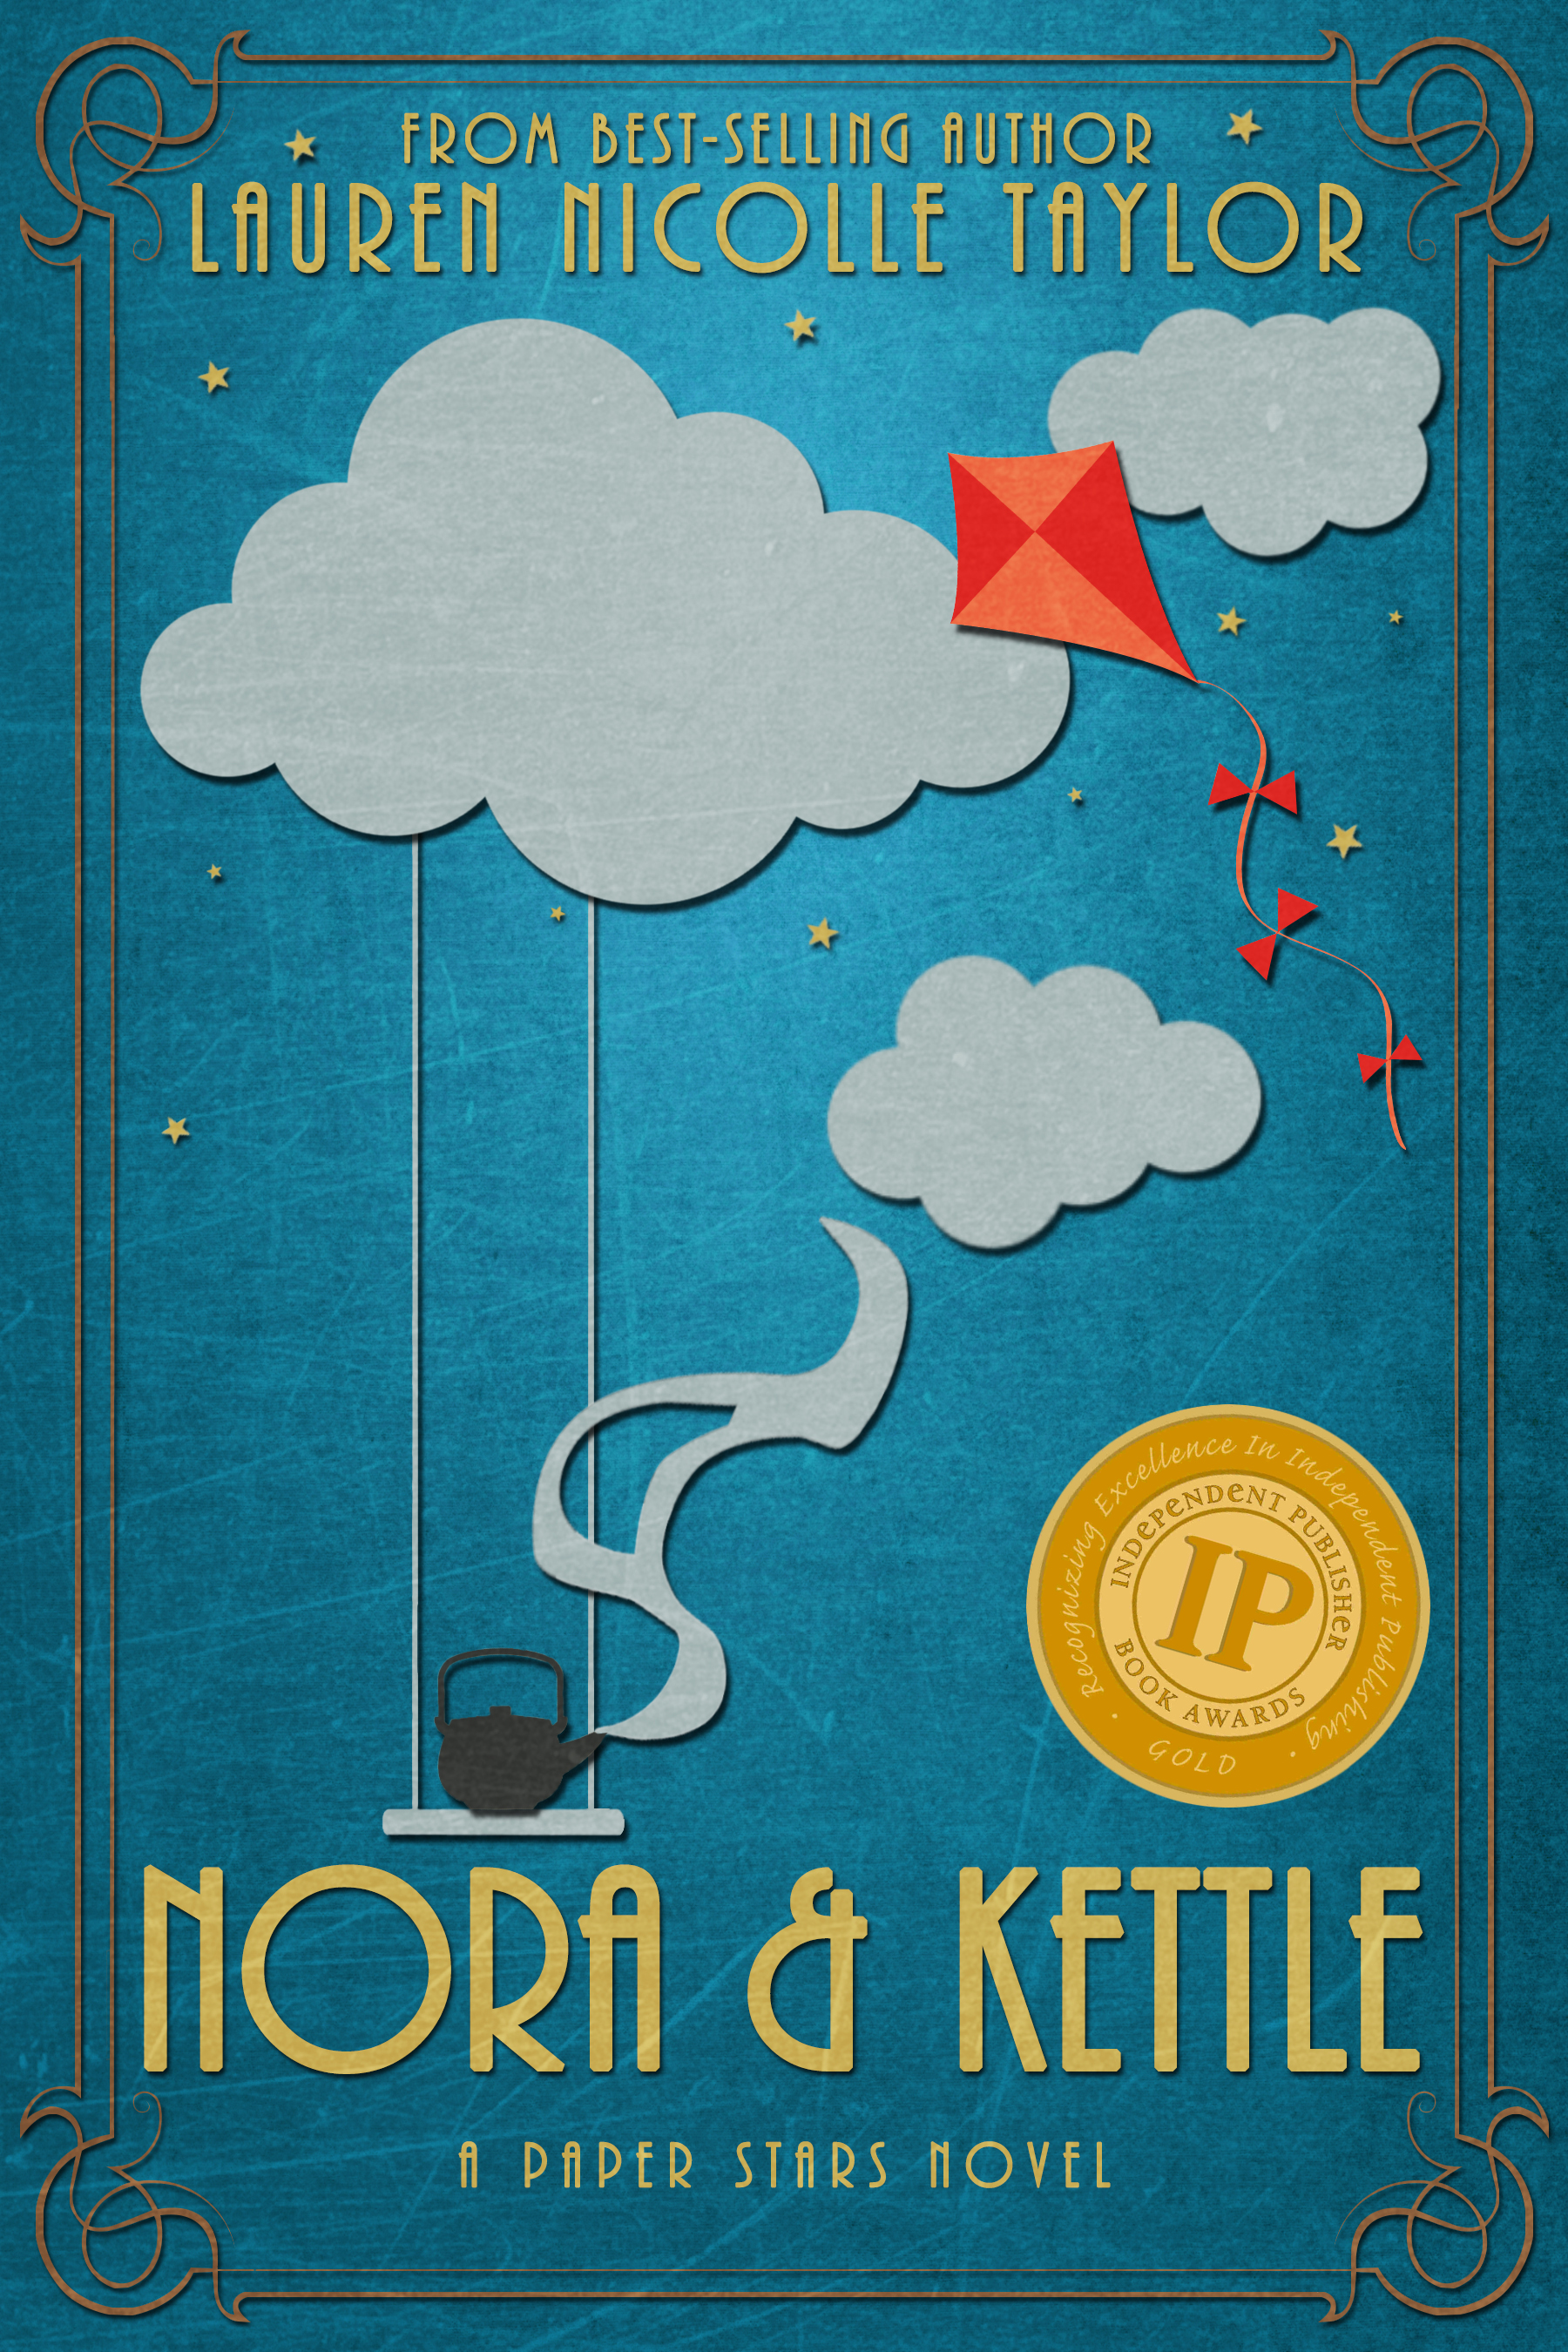 Ebook - Nora and Kettle 2 - Ippy